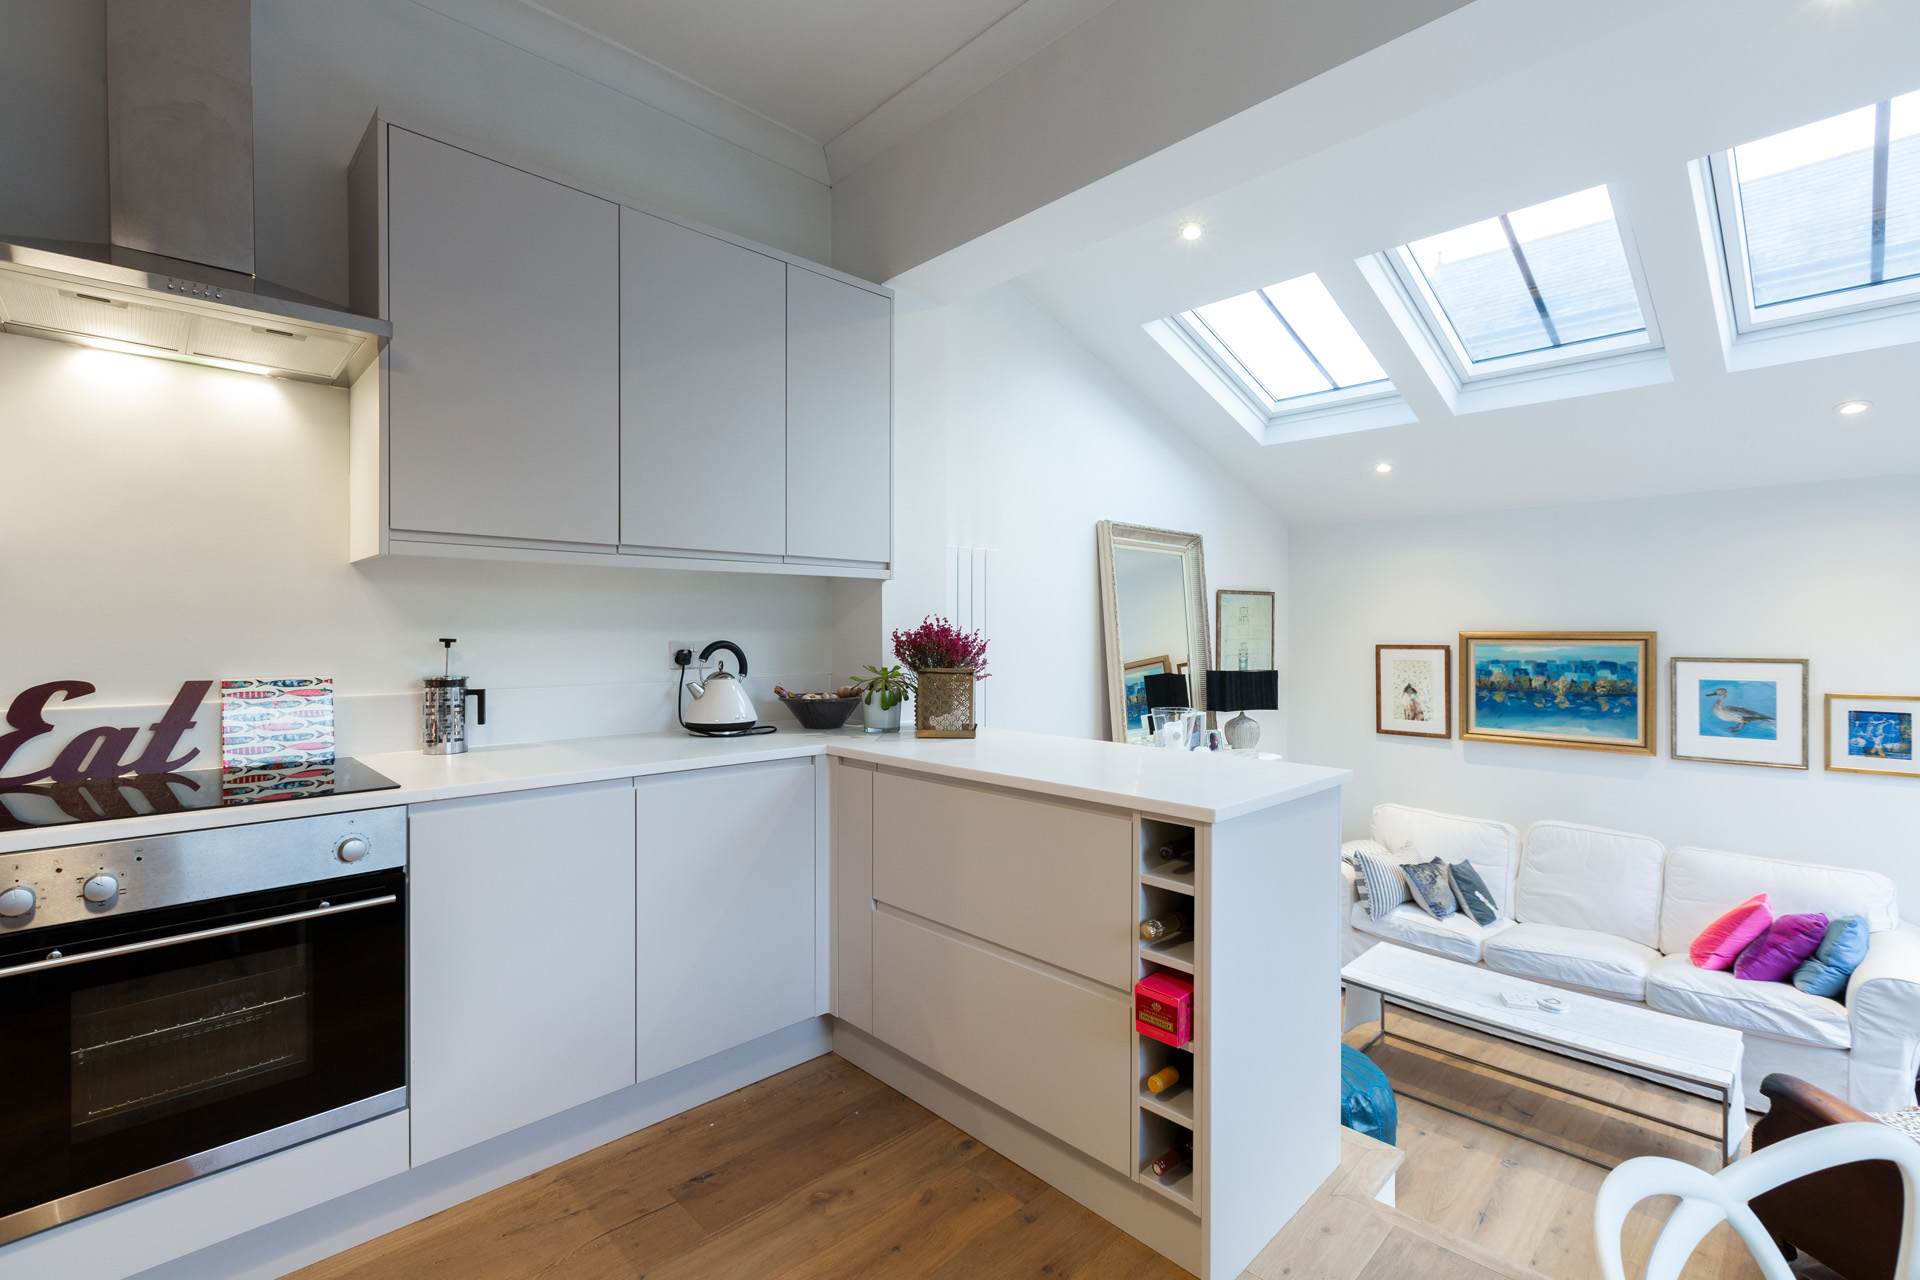 Kitchen Extensions With Velux Windows Home Kitchen Extension Projects In London Simply Extend